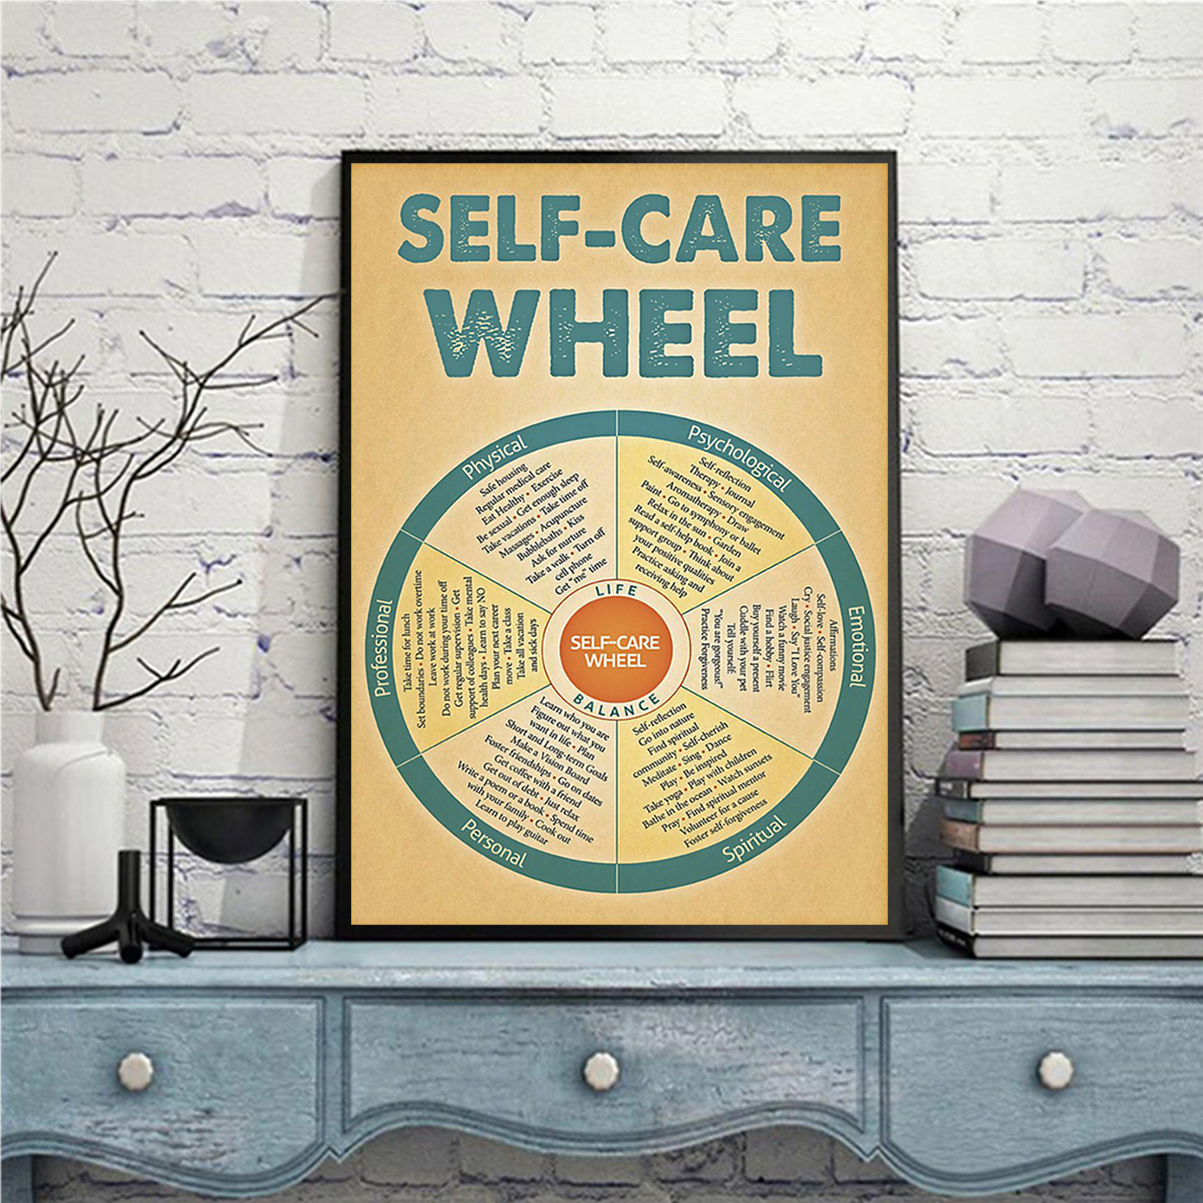 Social worker self-care wheel poster A2